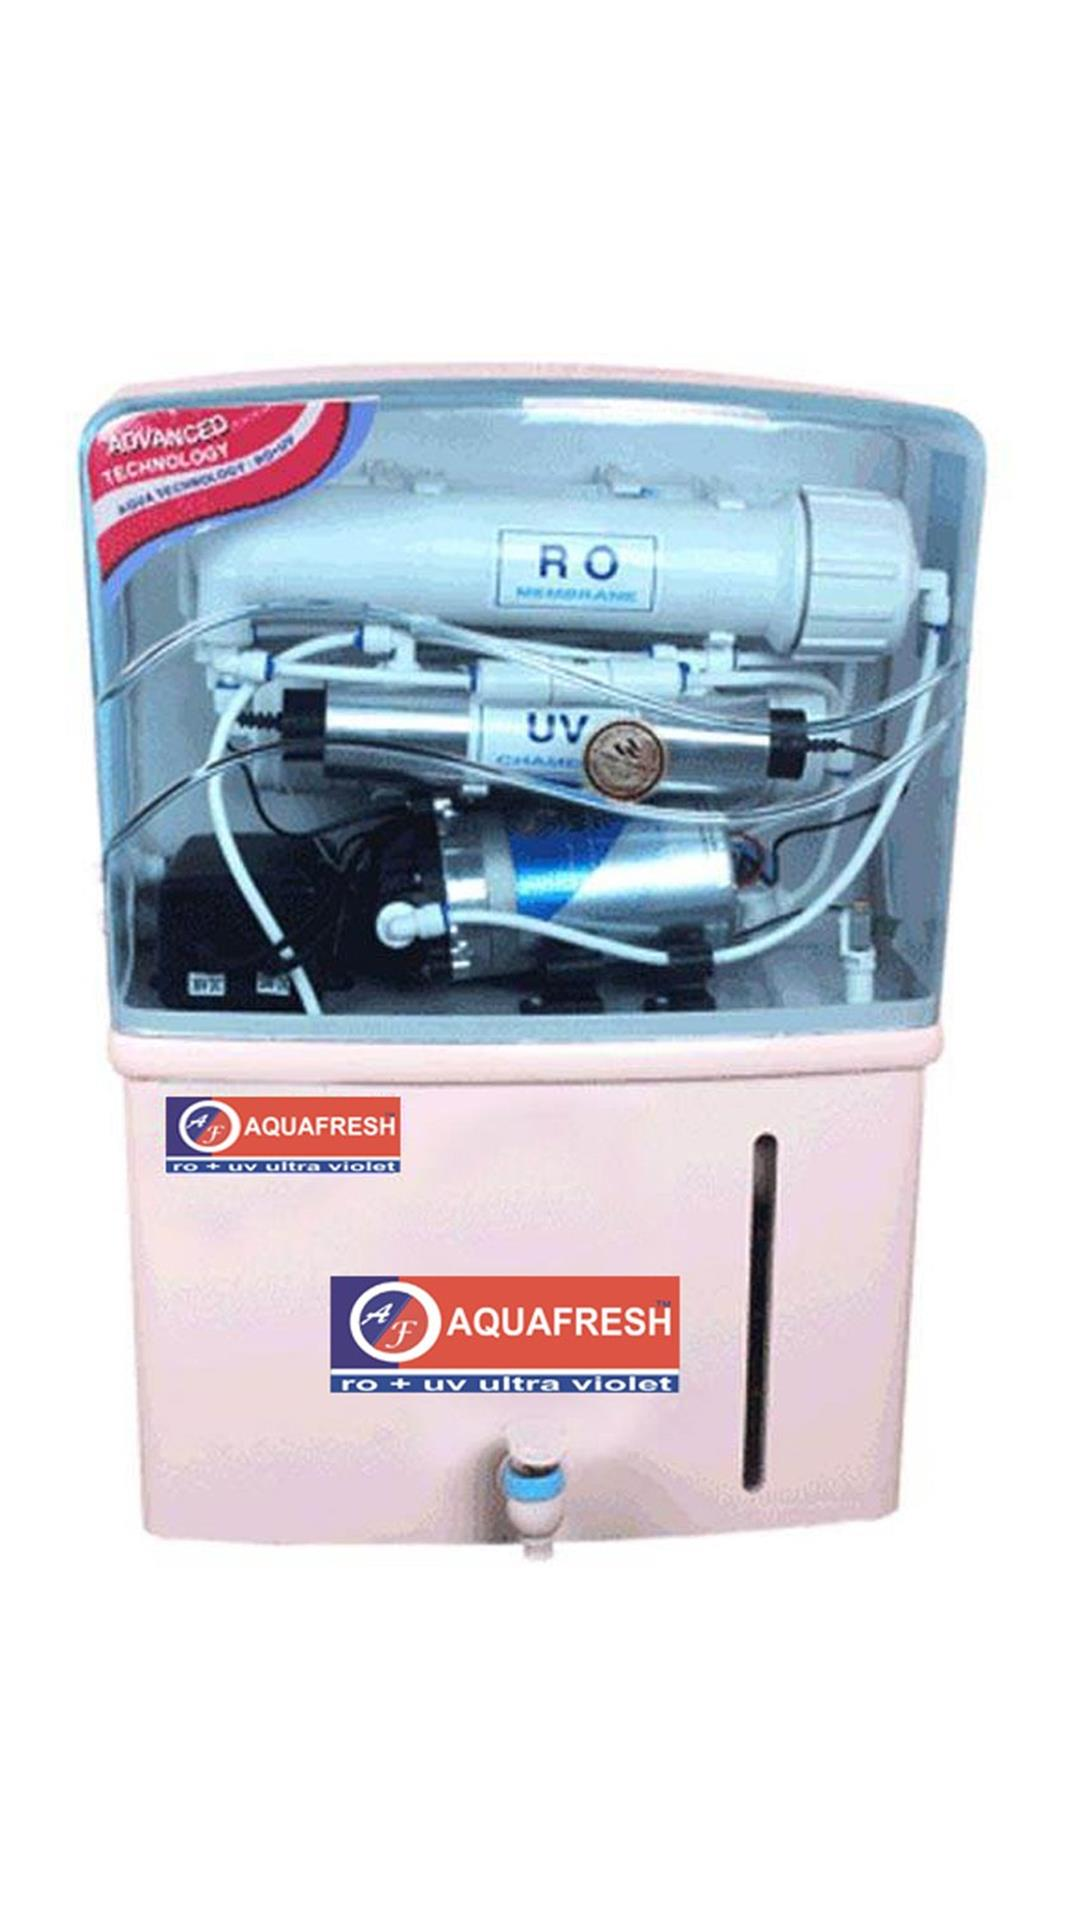 Aquafresh BTS021 12 L RO+UV+UF Water Purifier (White)